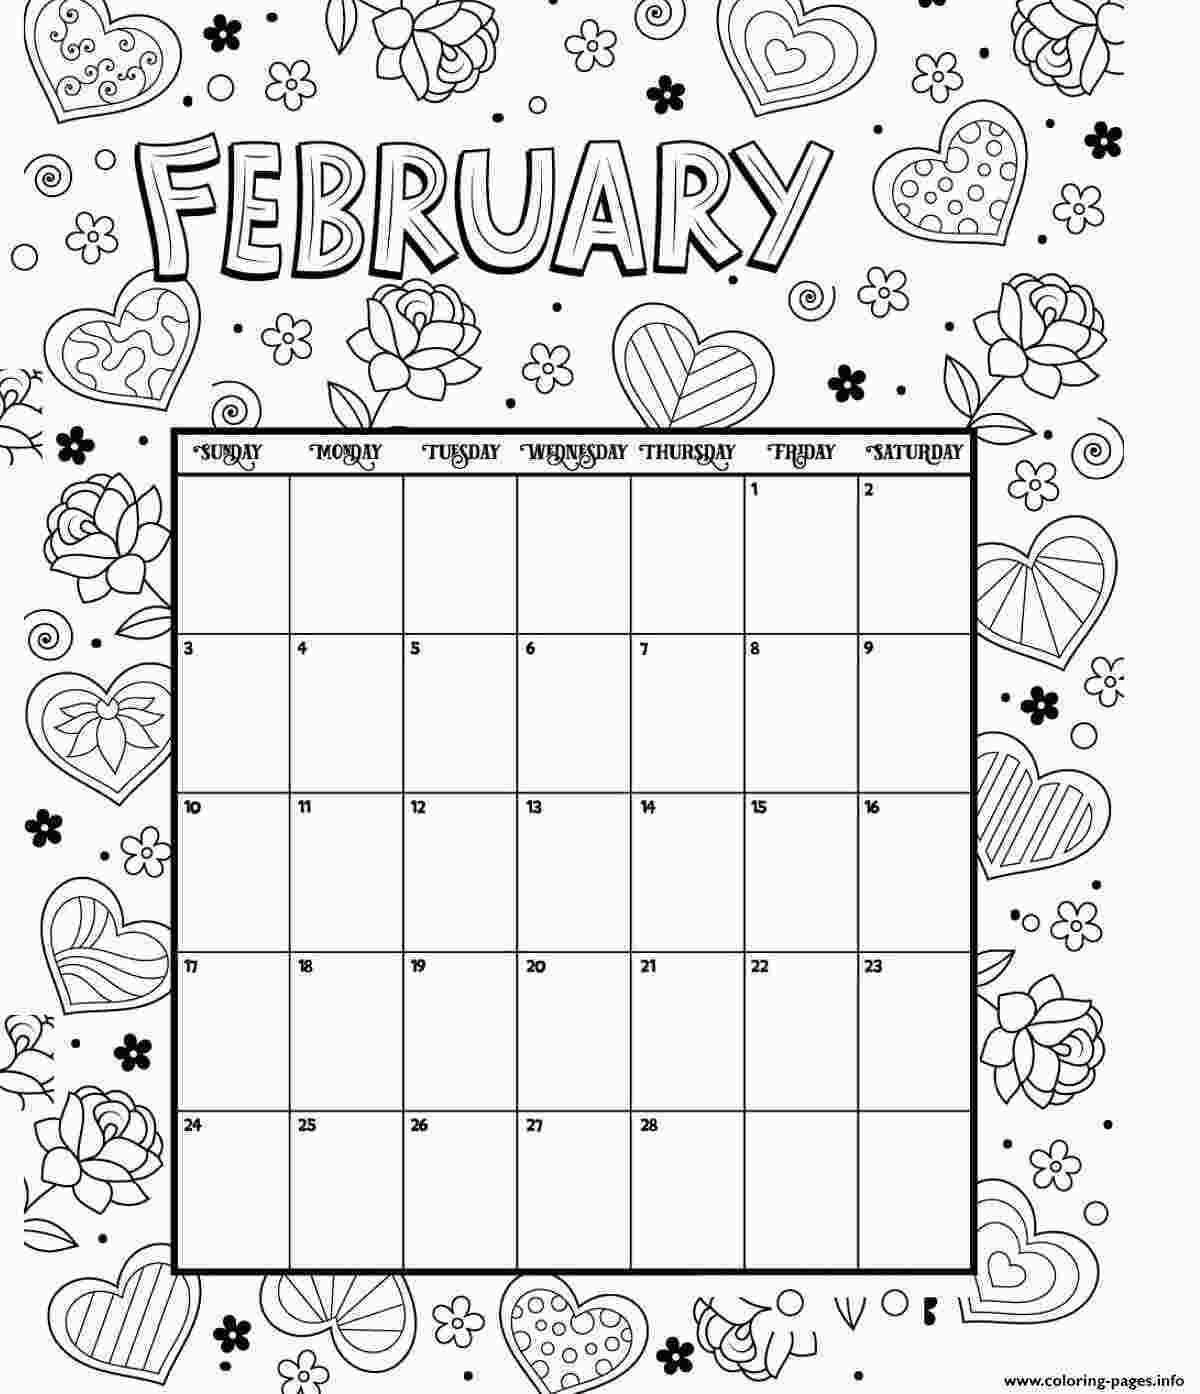 Free Coloring Calendar 2020 February Coloring Calendar Valentines Coloring Pages Printable Coloring Calendar Valentine Coloring Pages Printable Coloring Pages